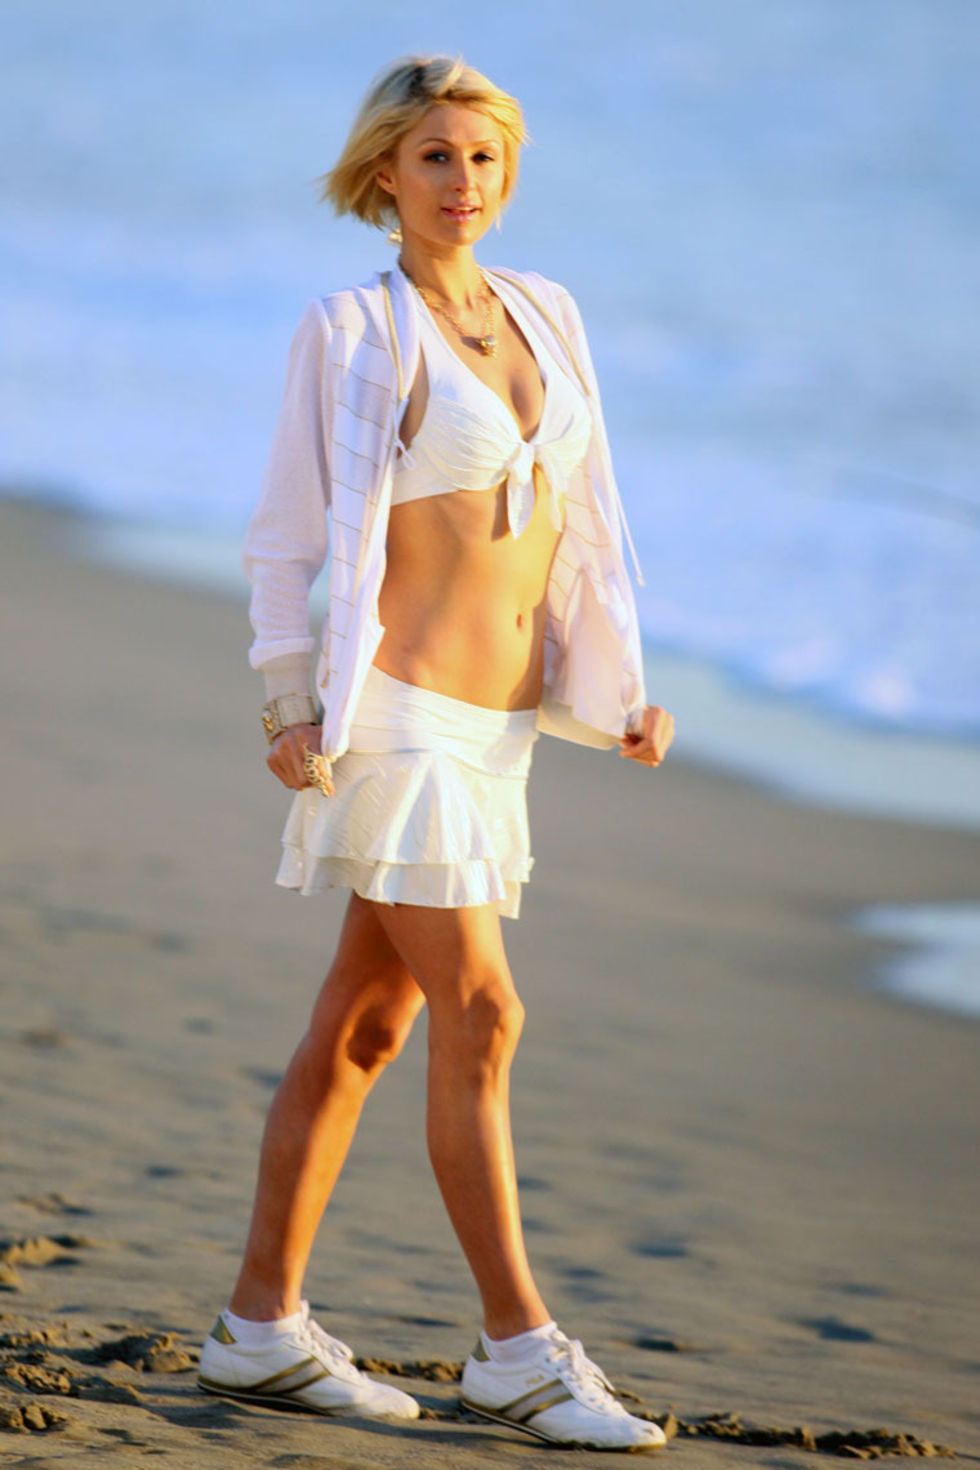 paris-hilton-fila-photoshoot-on-venice-beach-01